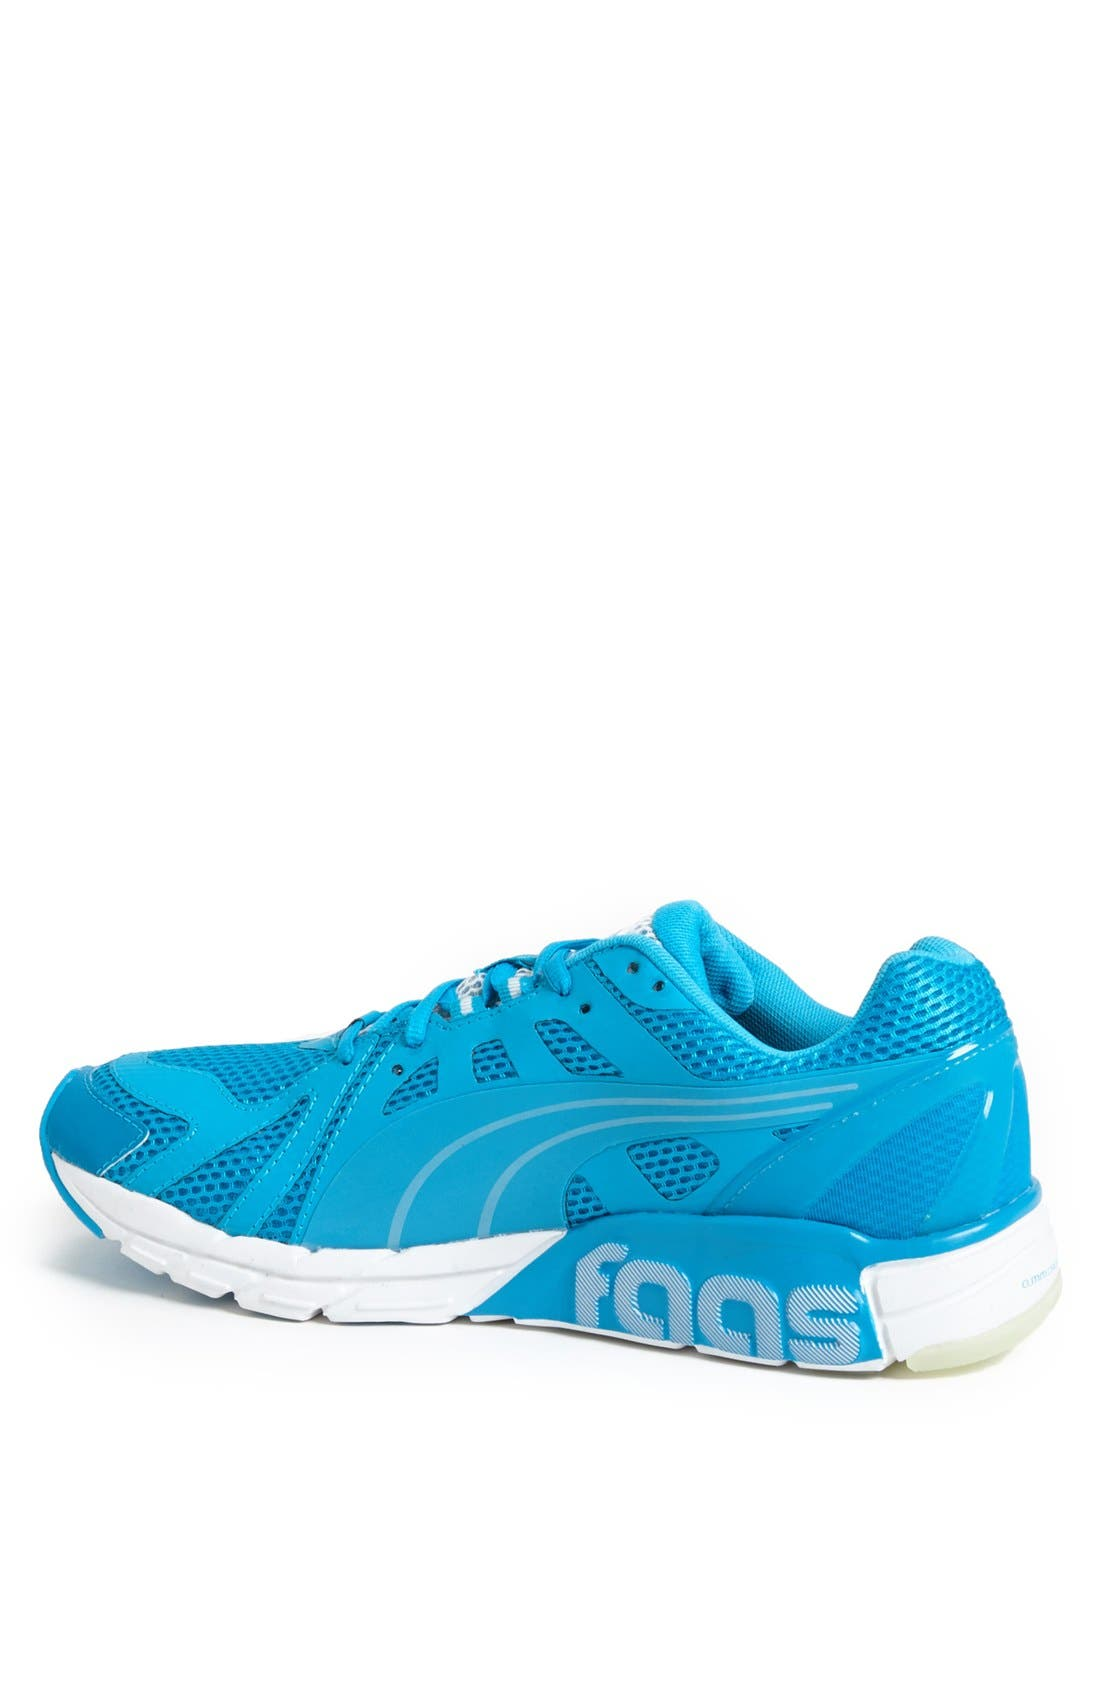 Alternate Image 2  - PUMA 'Faas 600 S Glow' Running Shoe (Men)